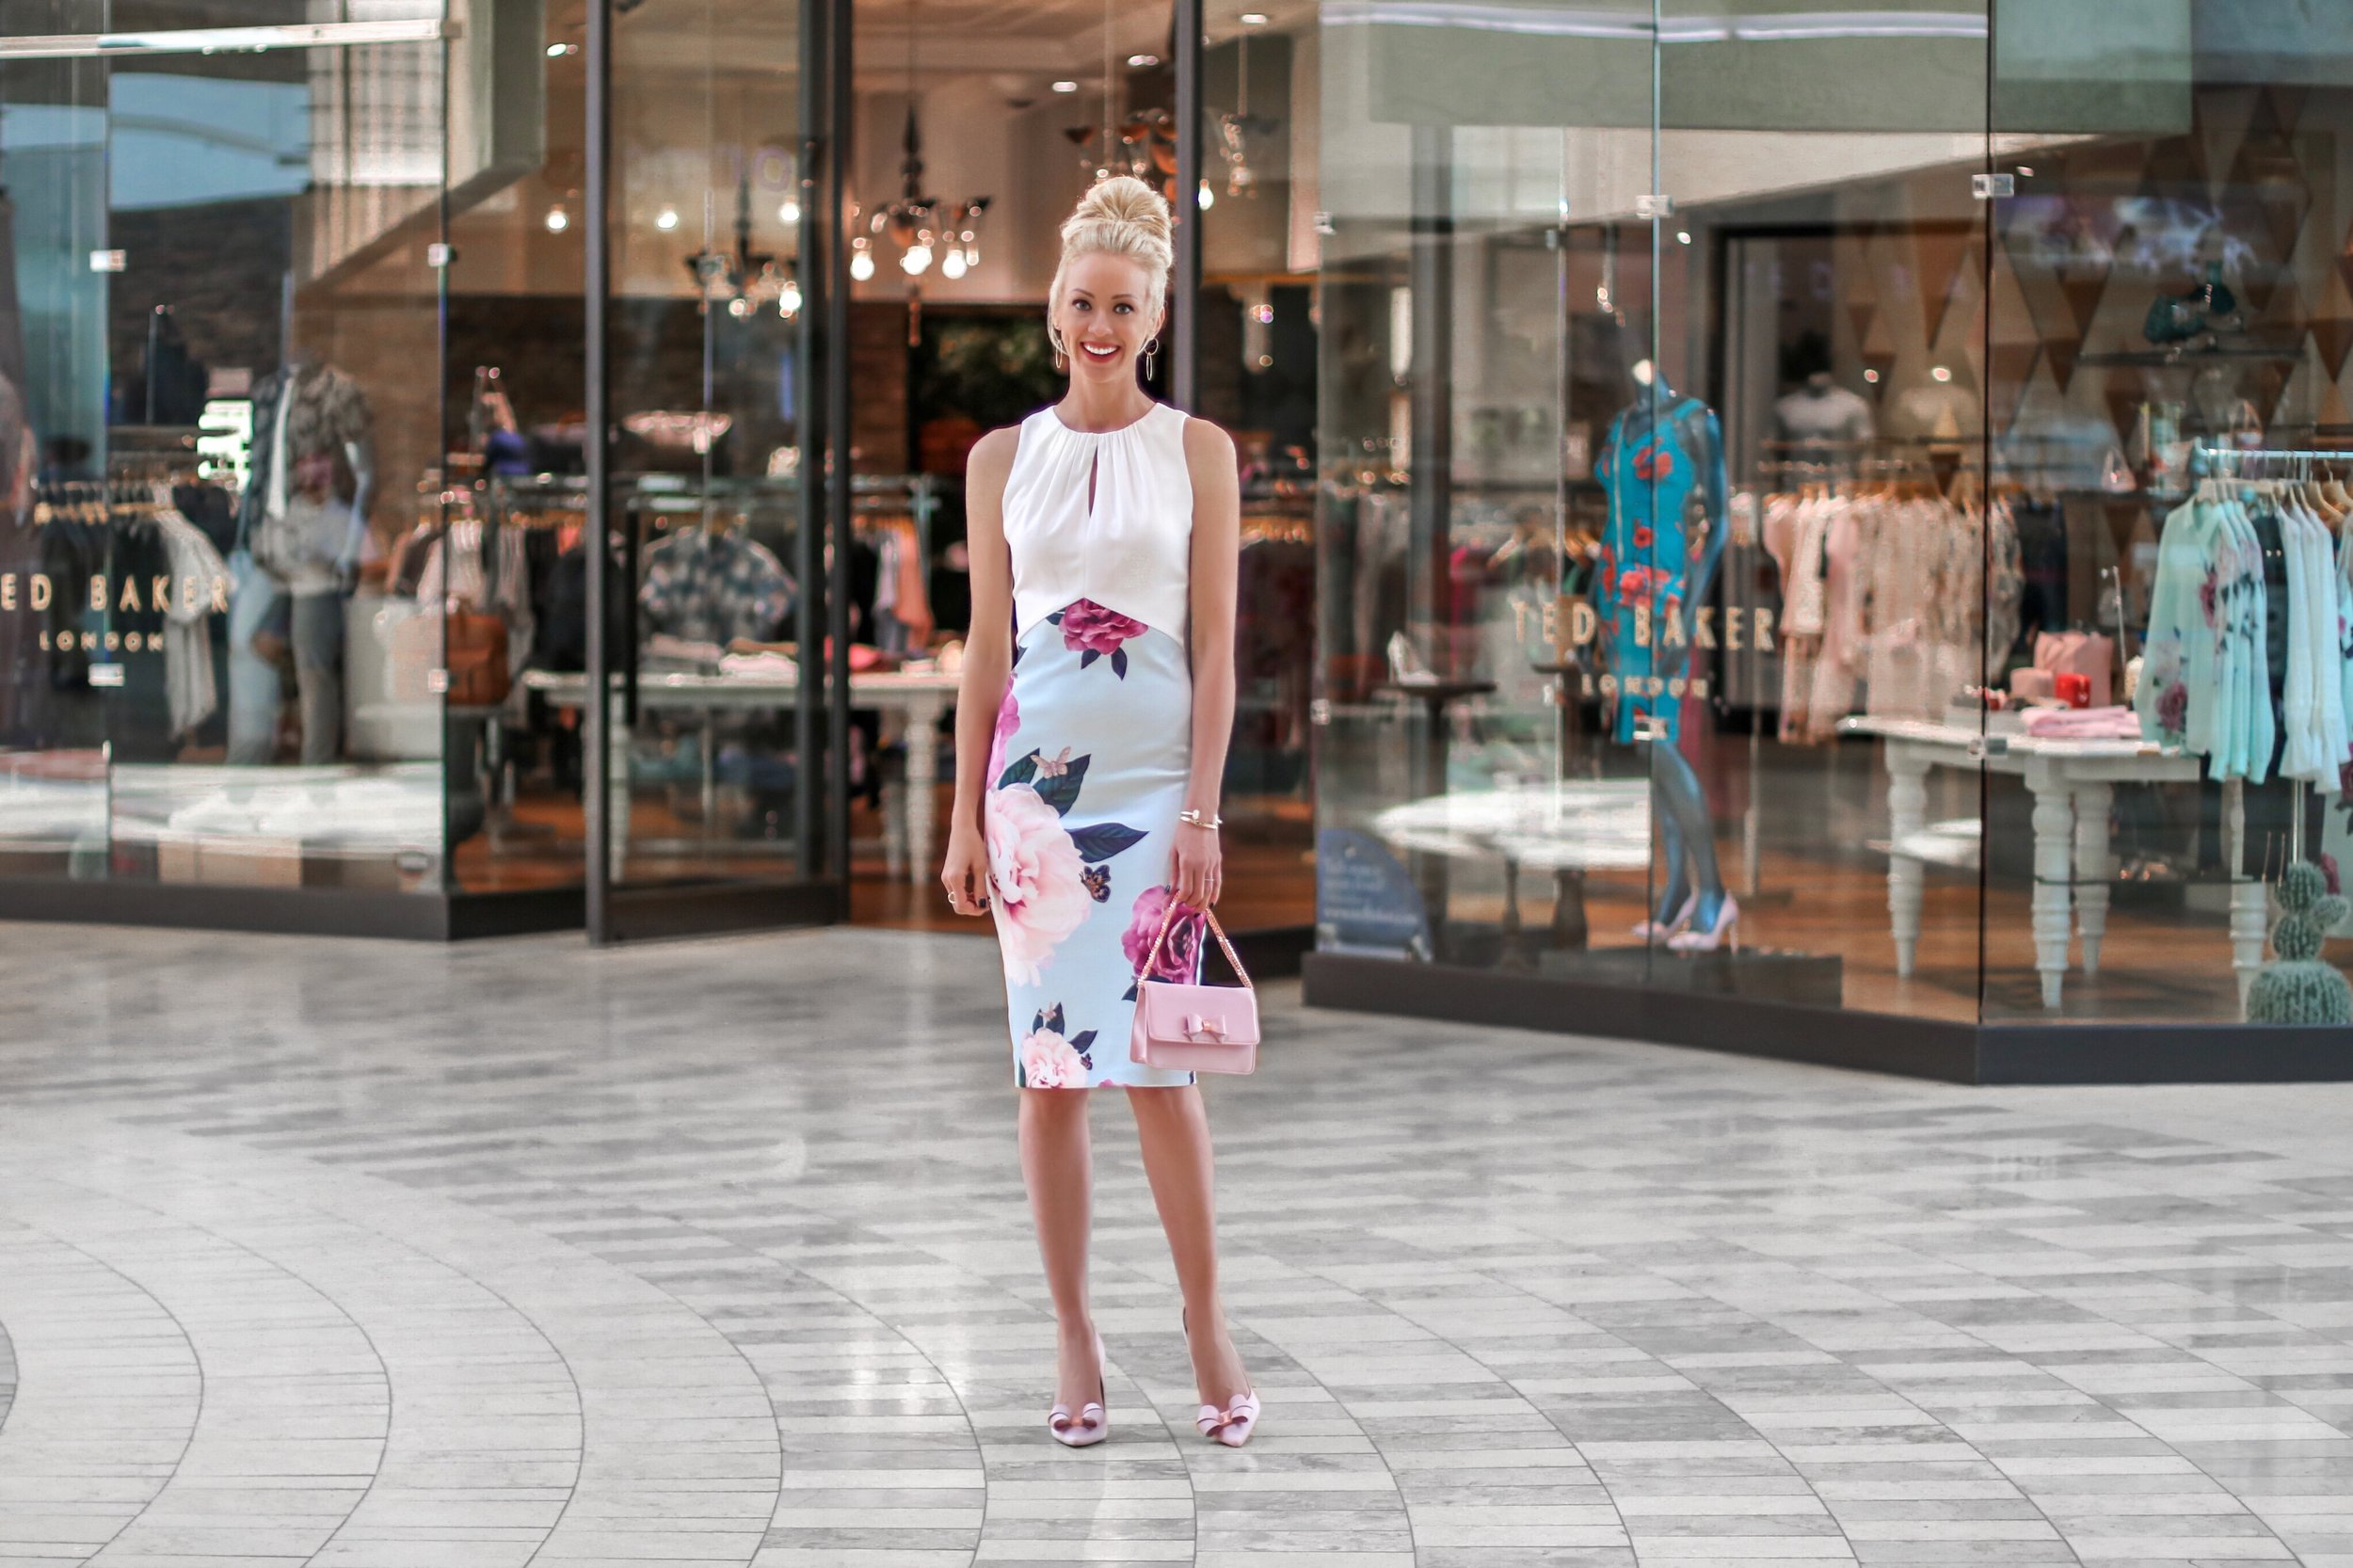 ted-baker-dress-annile-bodycon-scottsdale-fashion-square-mall.jpg